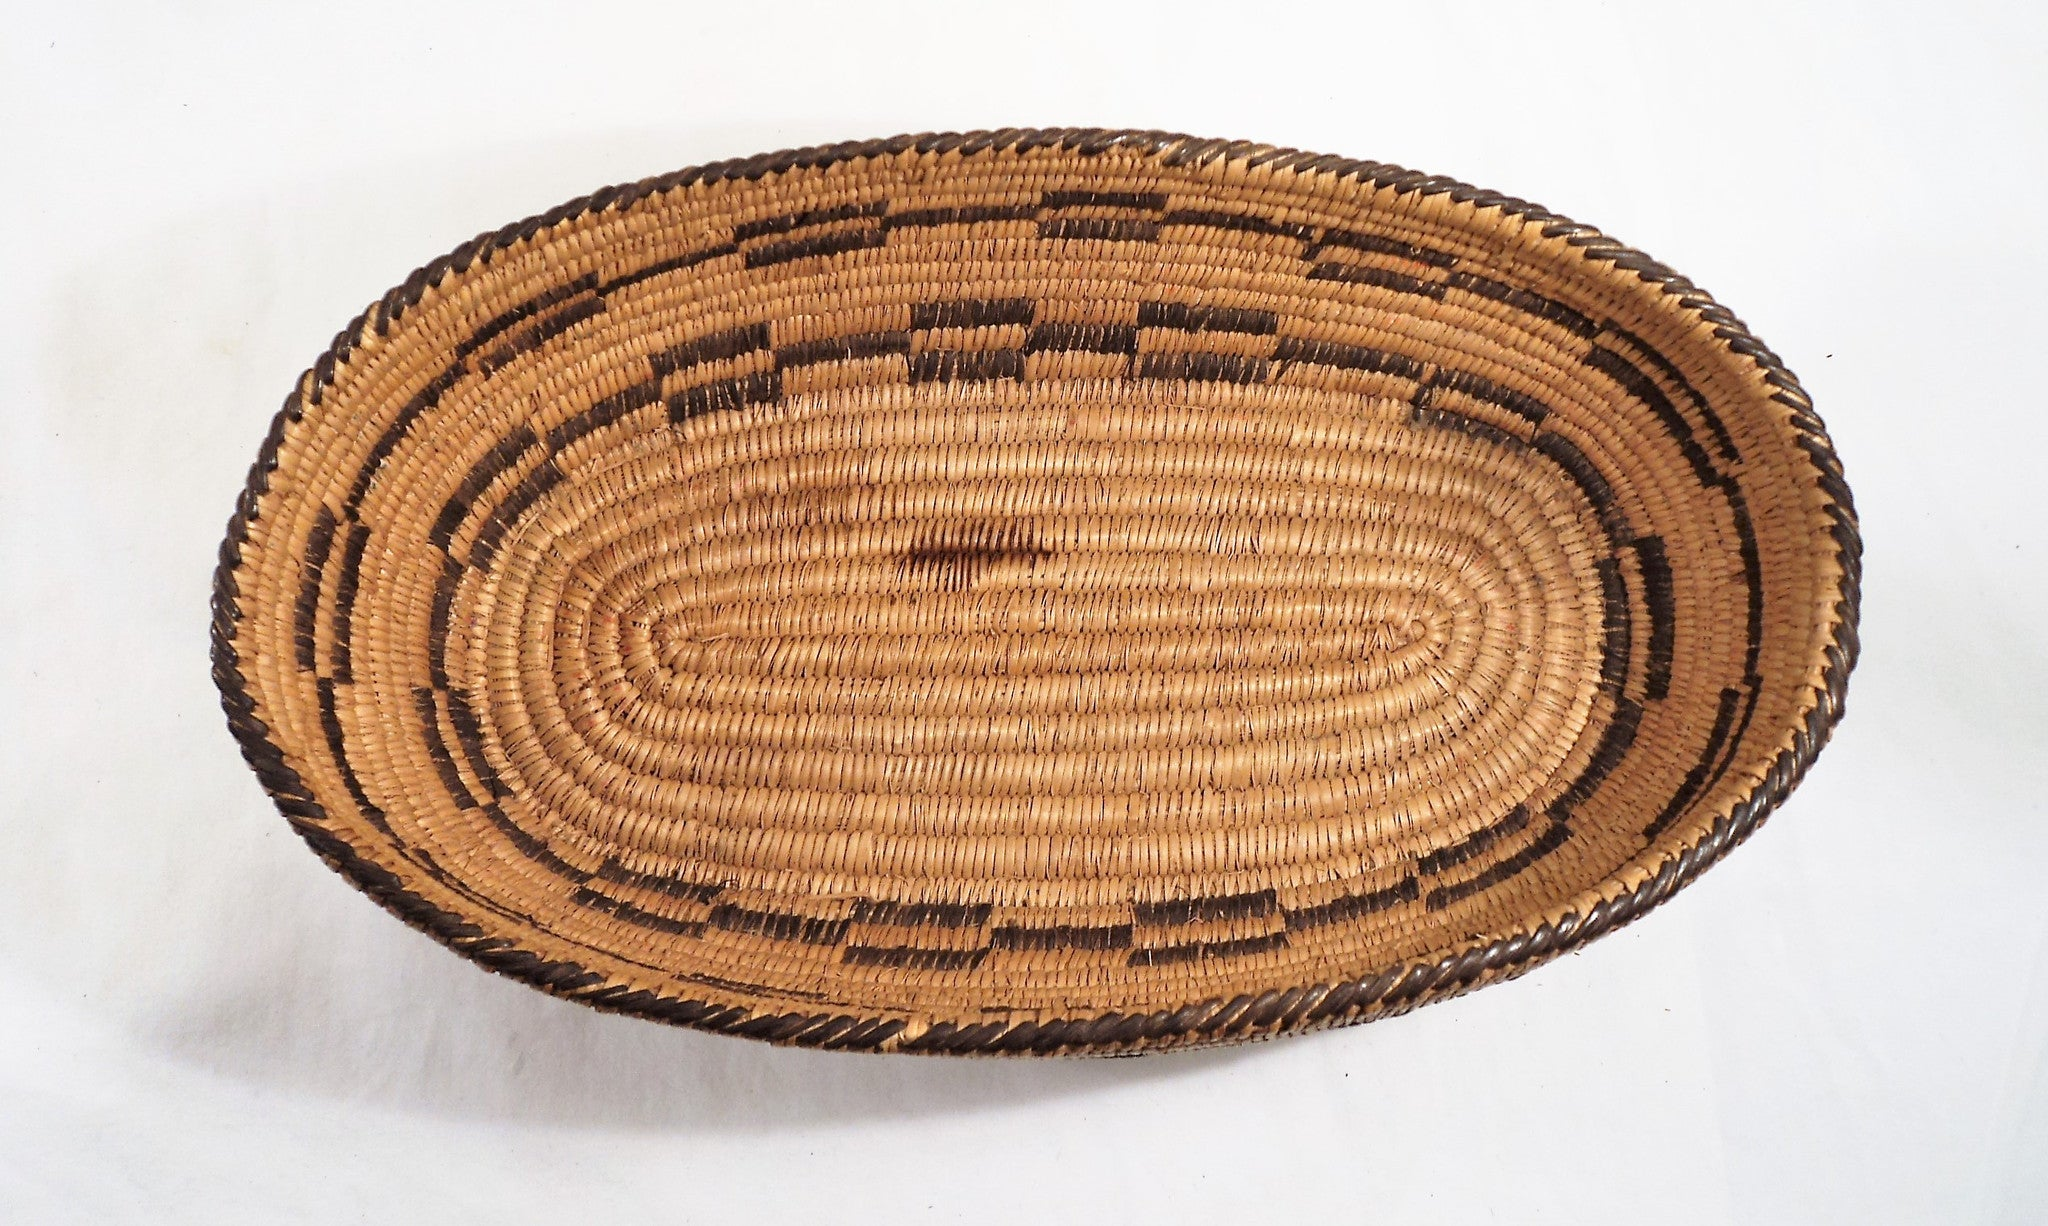 Early 1900s Pima Hand-Woven Oval Lidded Basket